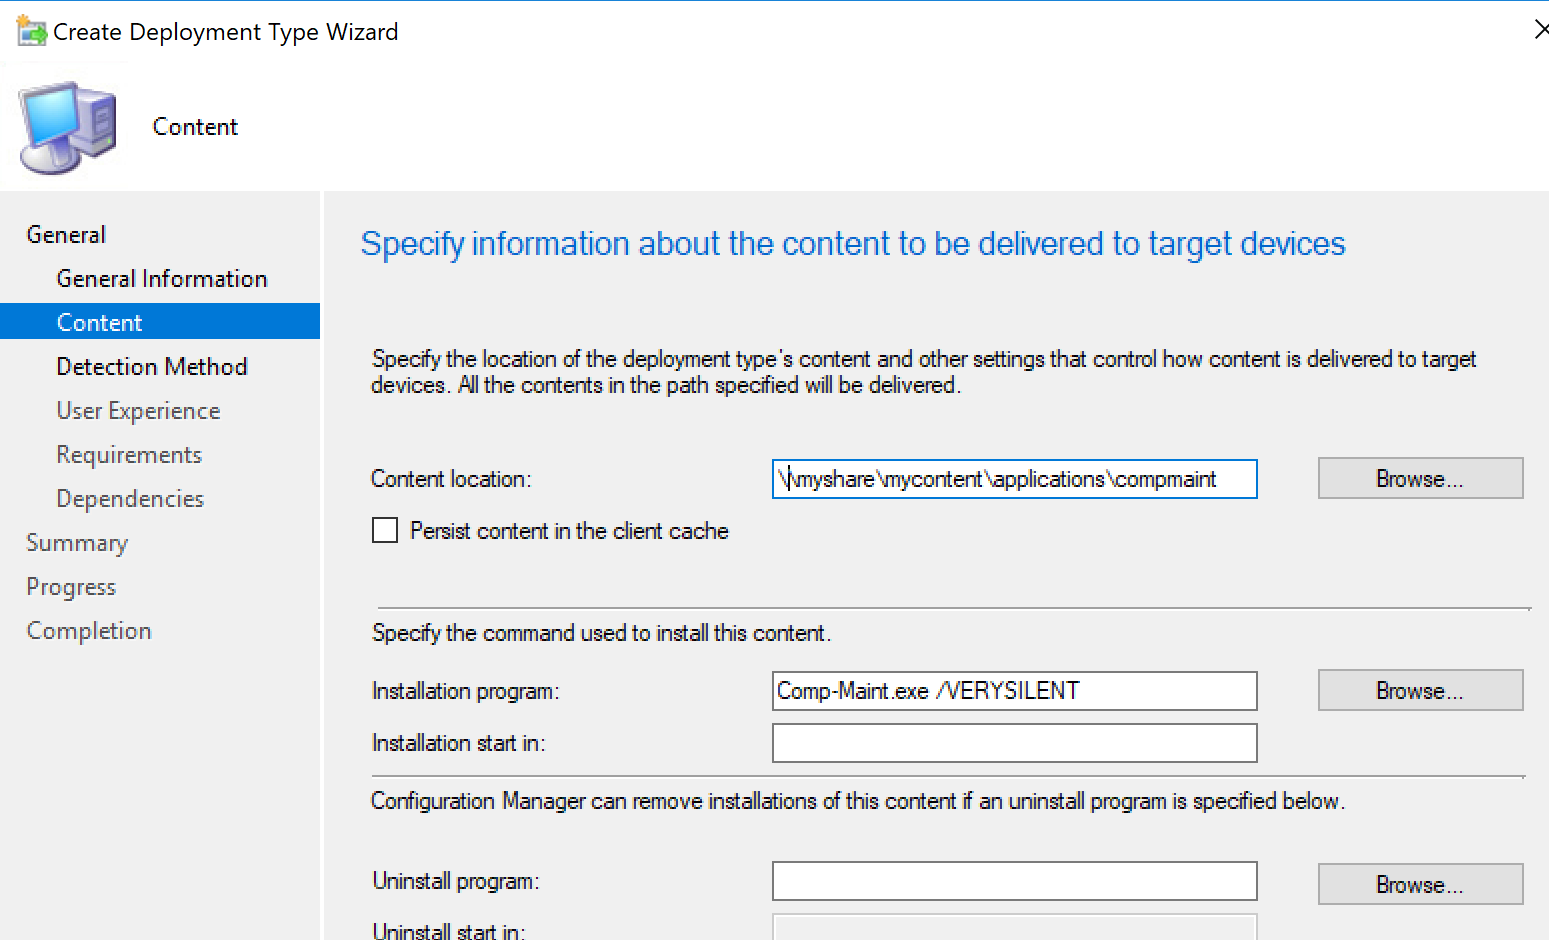 Content location and installation program in SCCM